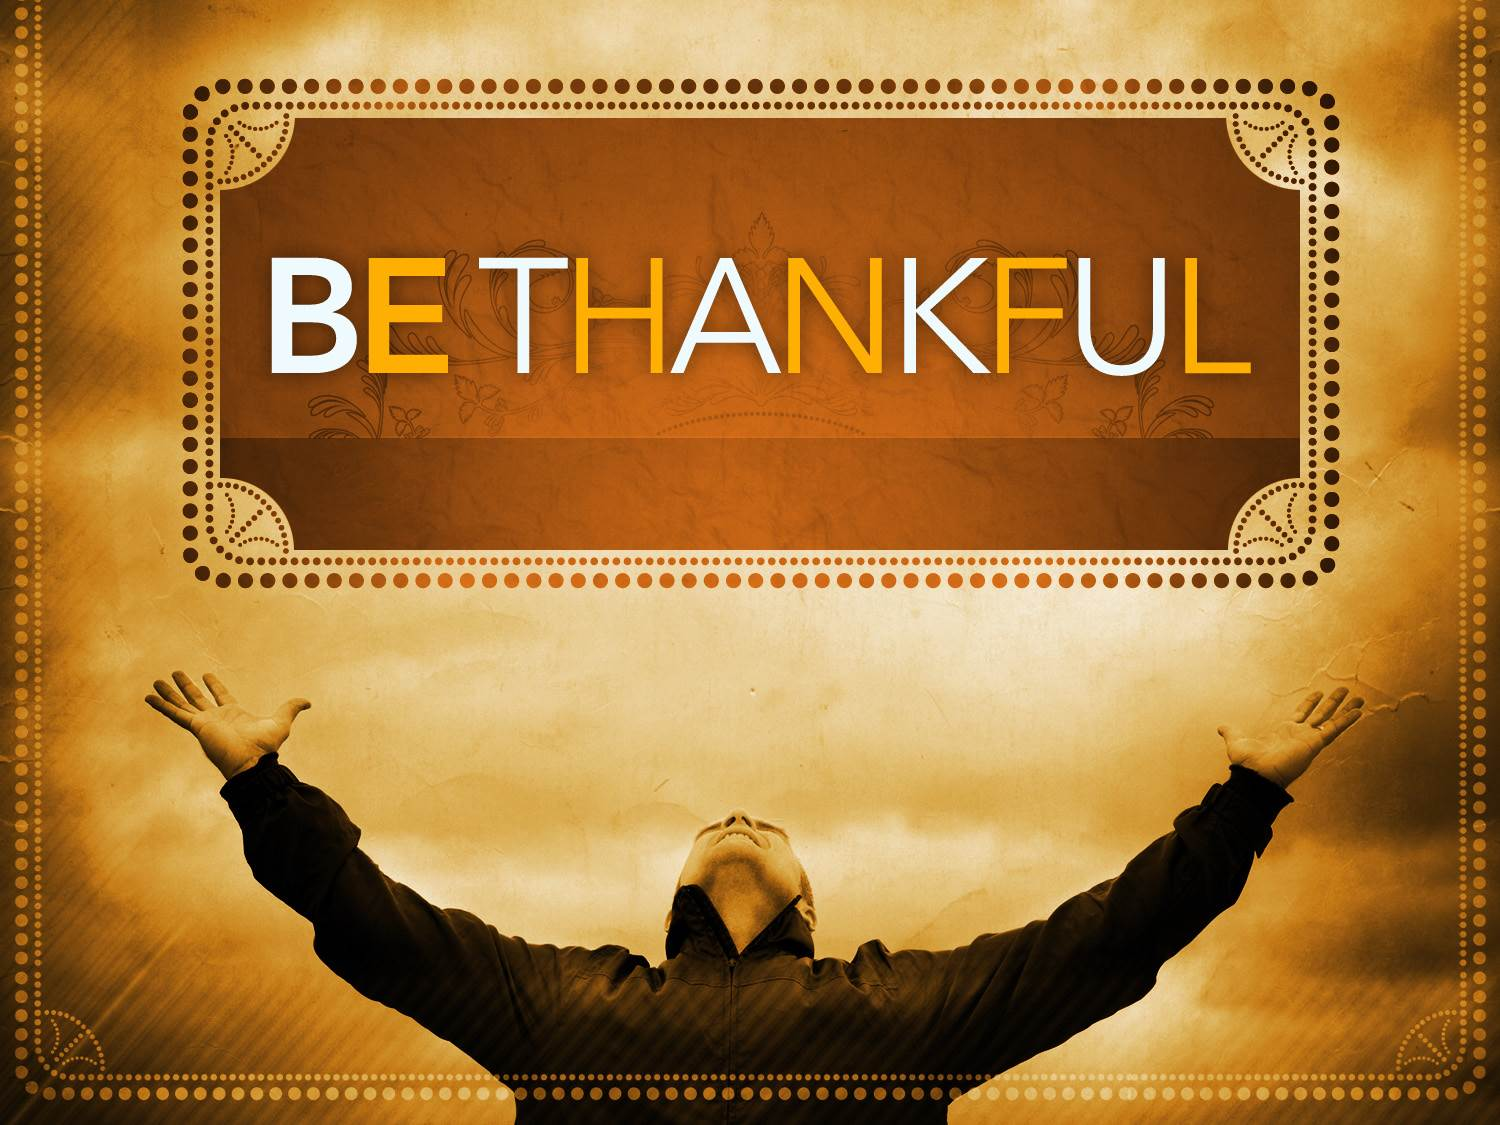 Remember To Be Thankful This Year.